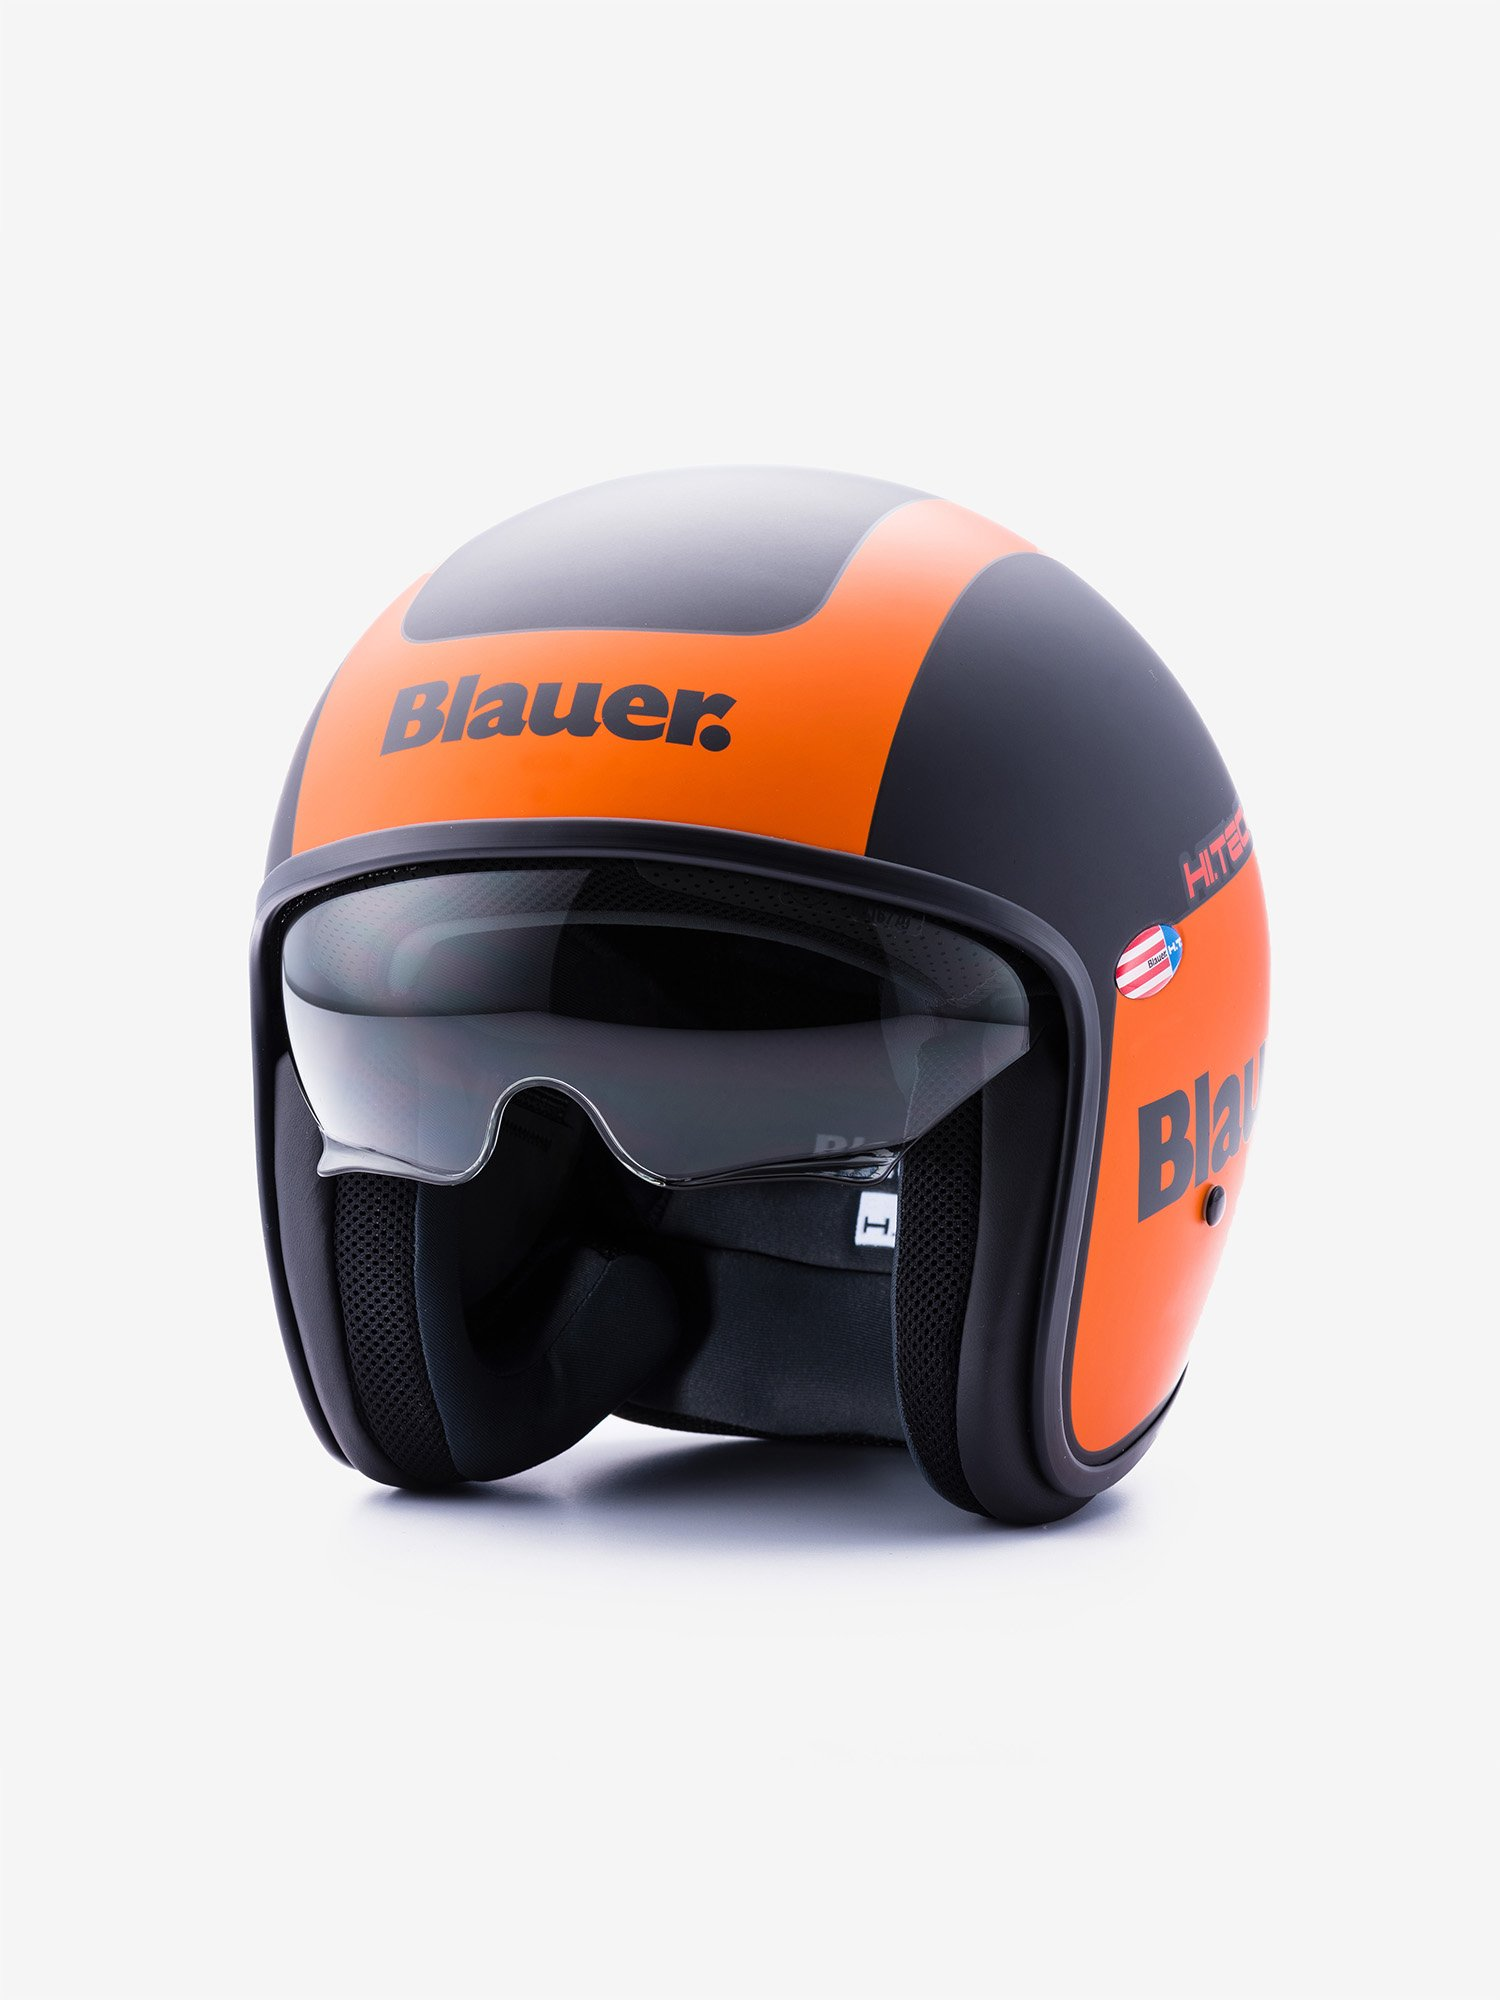 Blauer - PILOT 1.1 BICOLOR MATT - Black / Orange Matt - Blauer